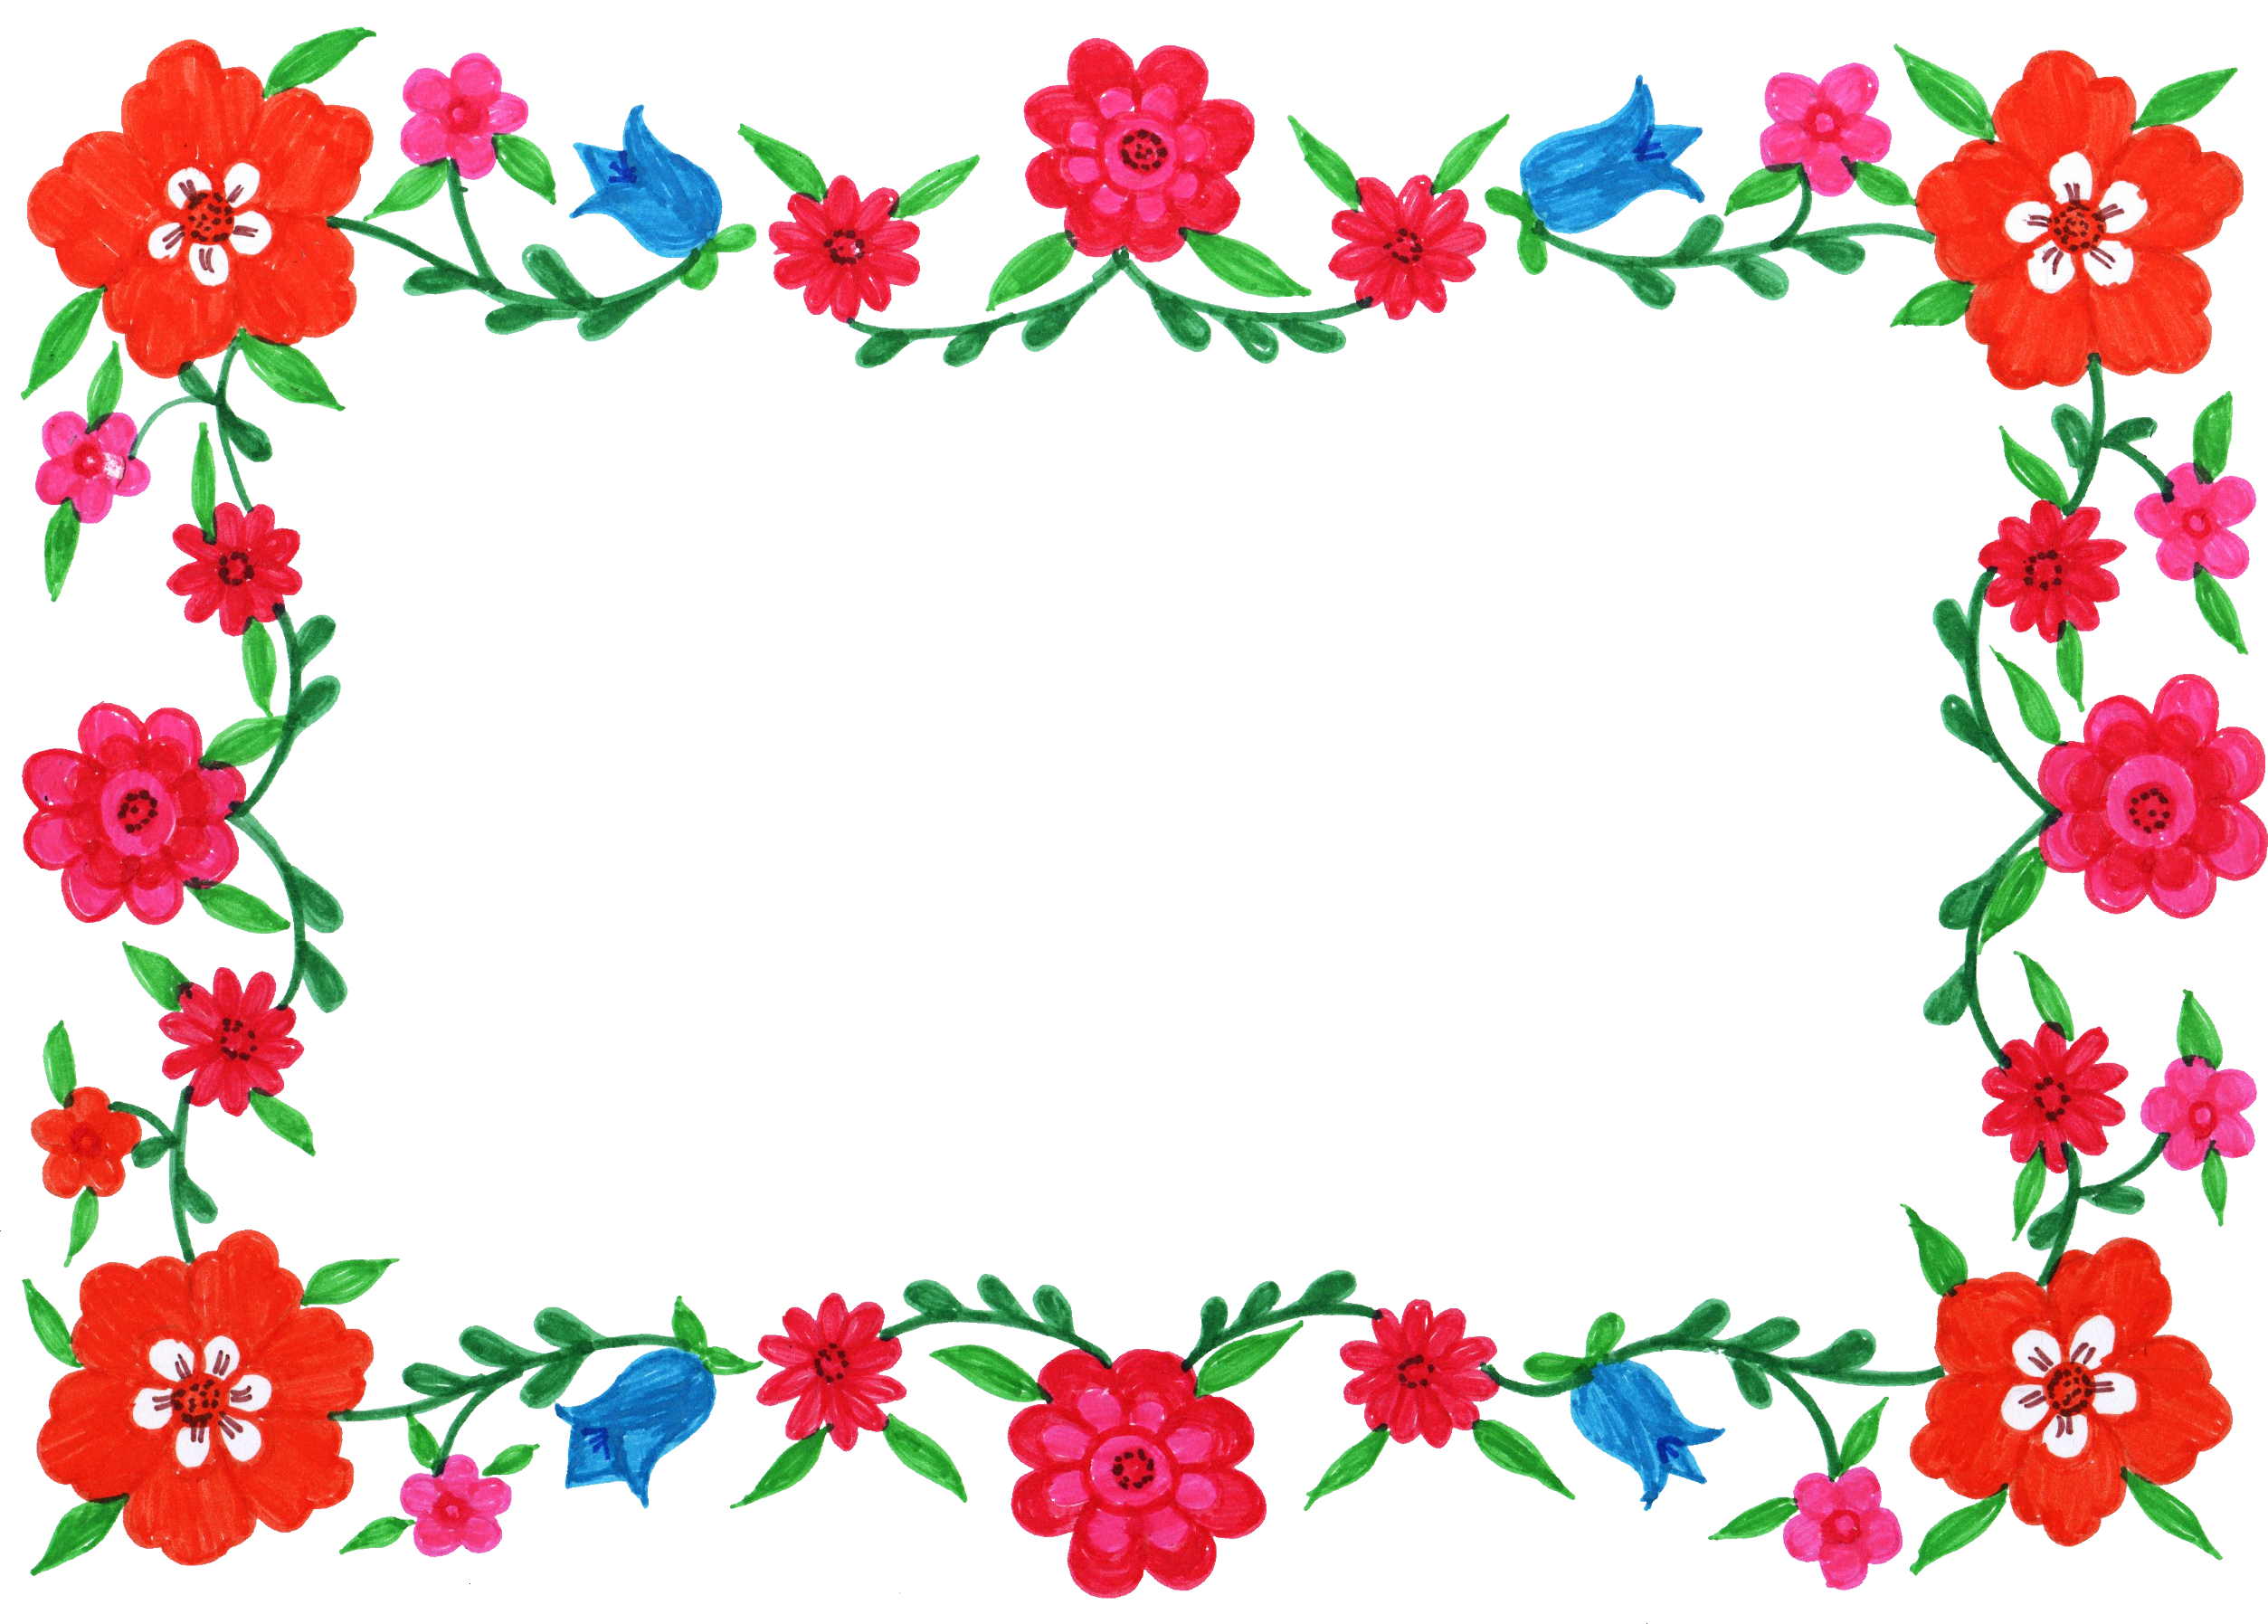 Floral Frame Png Floral Frame Png Transparent Free For Download